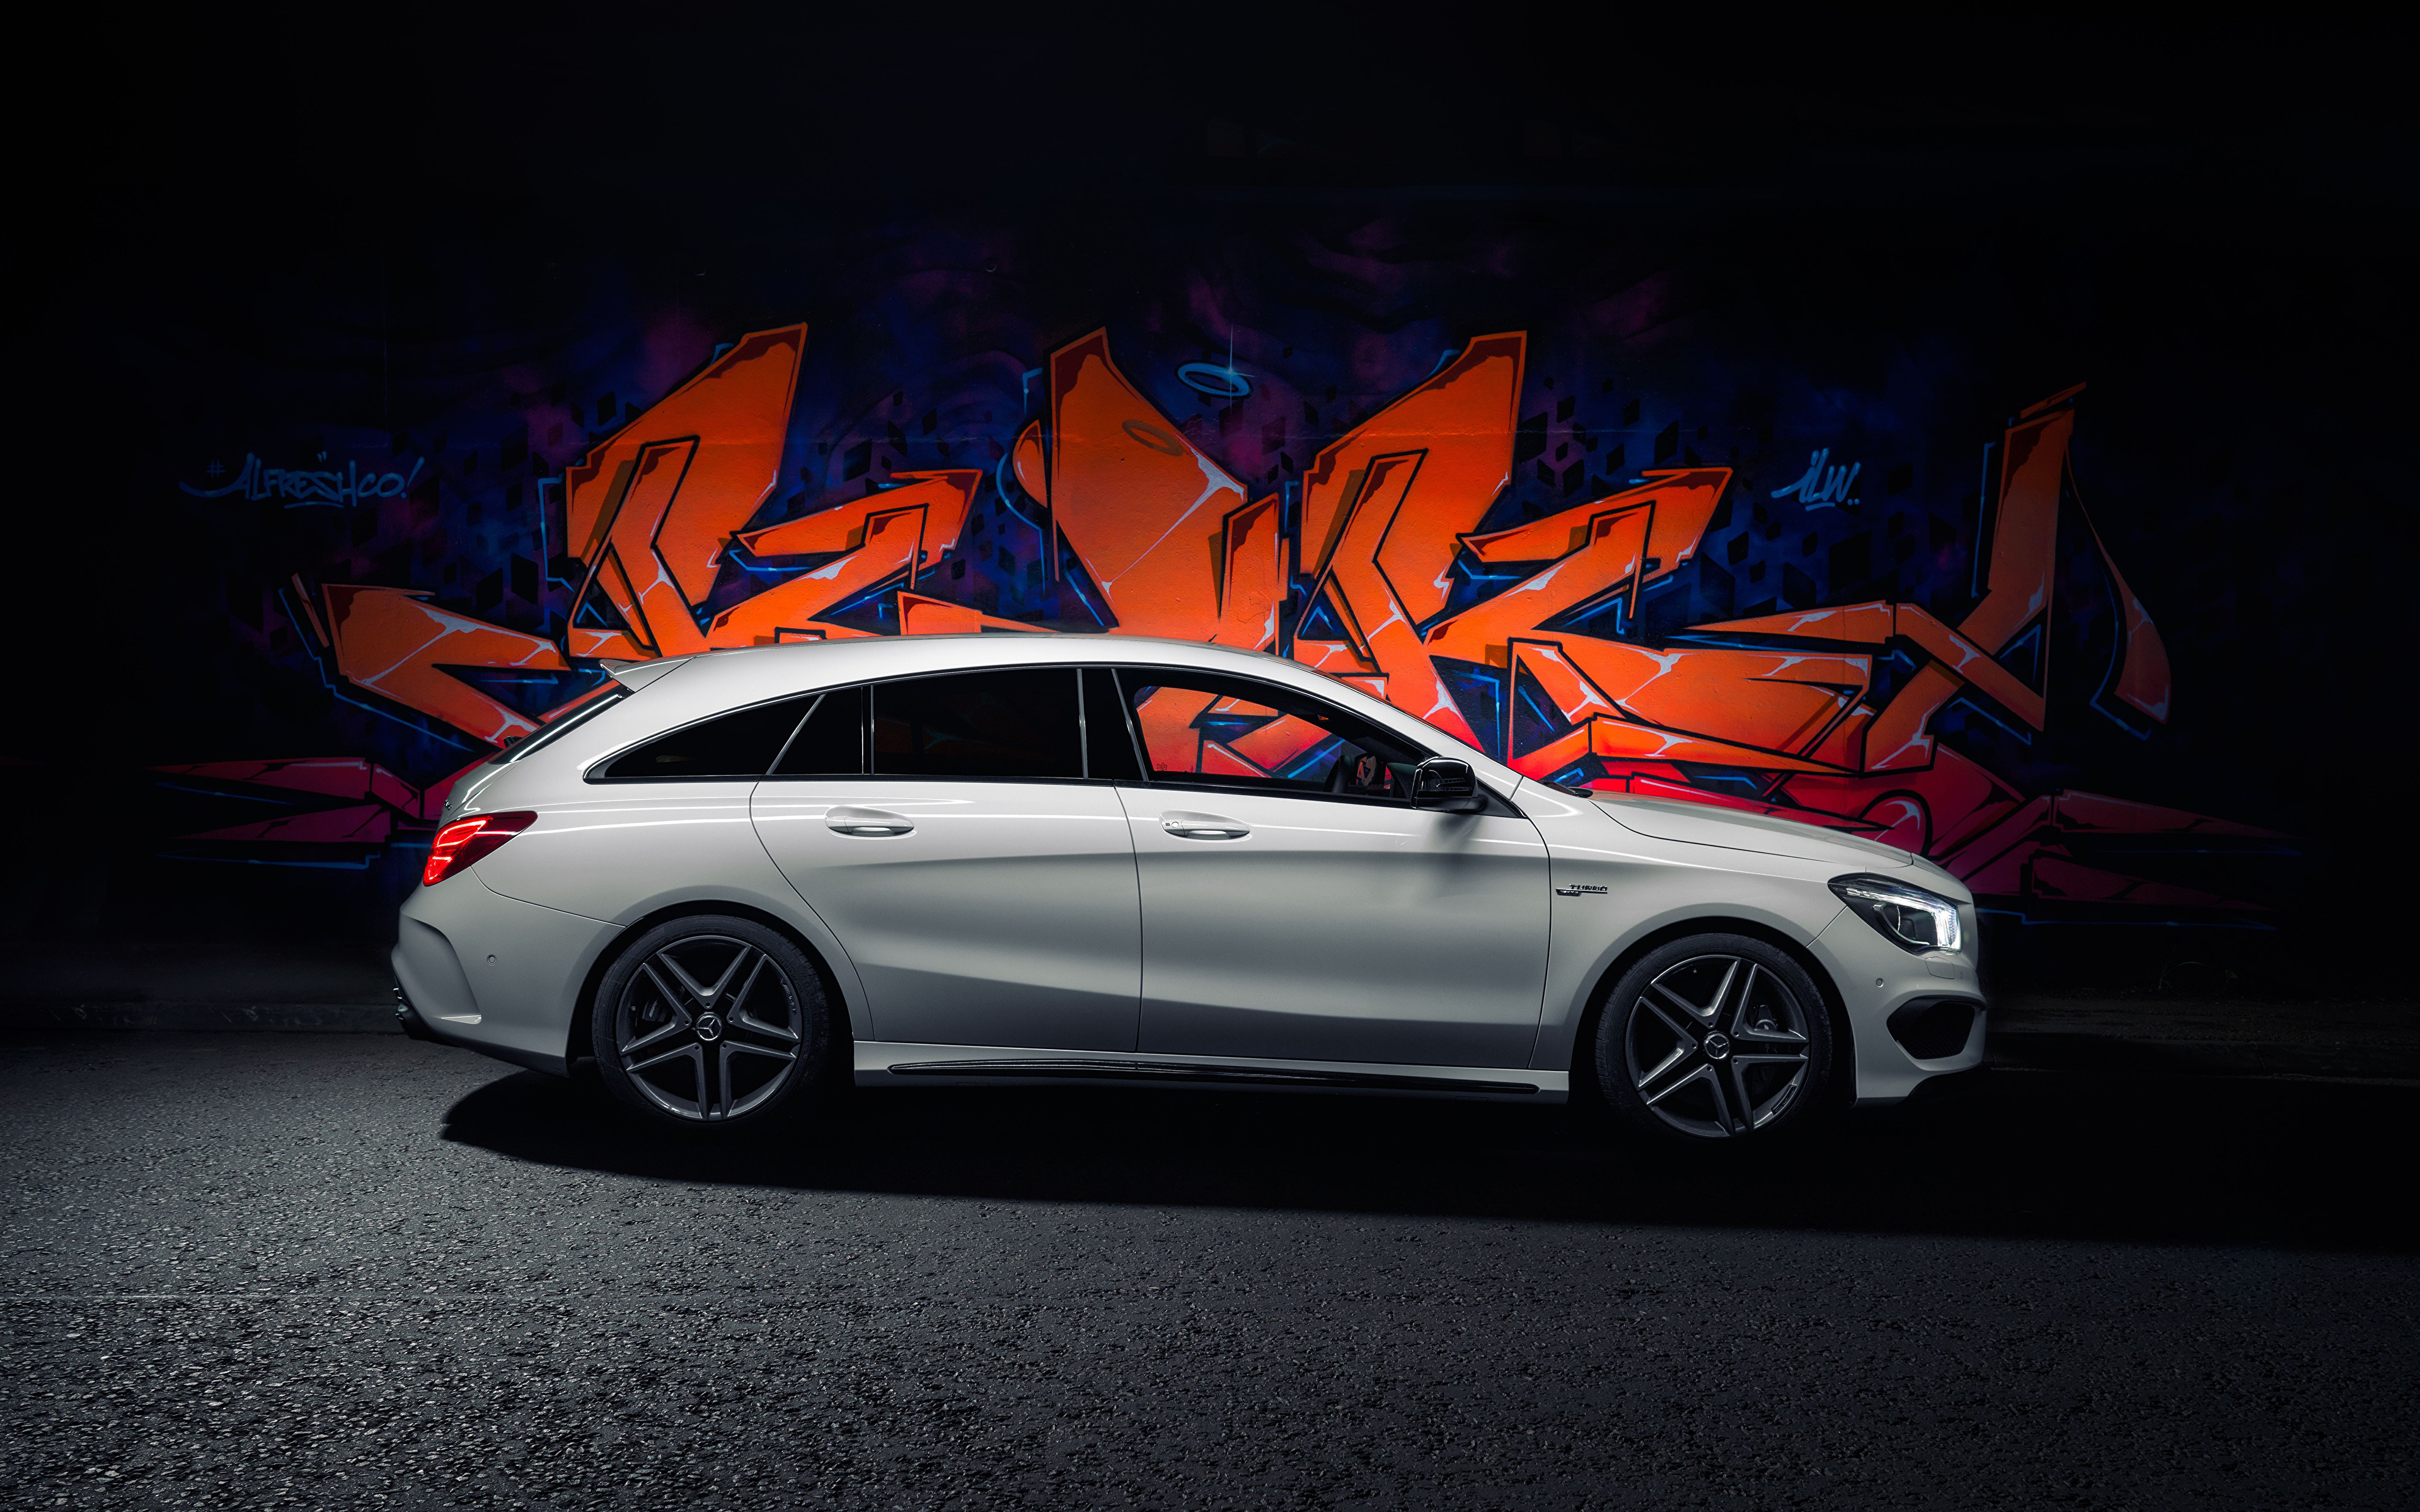 Images Mercedes Benz 2015 AMG CLA 45 Shooting Brake 3840x2400 3840x2400